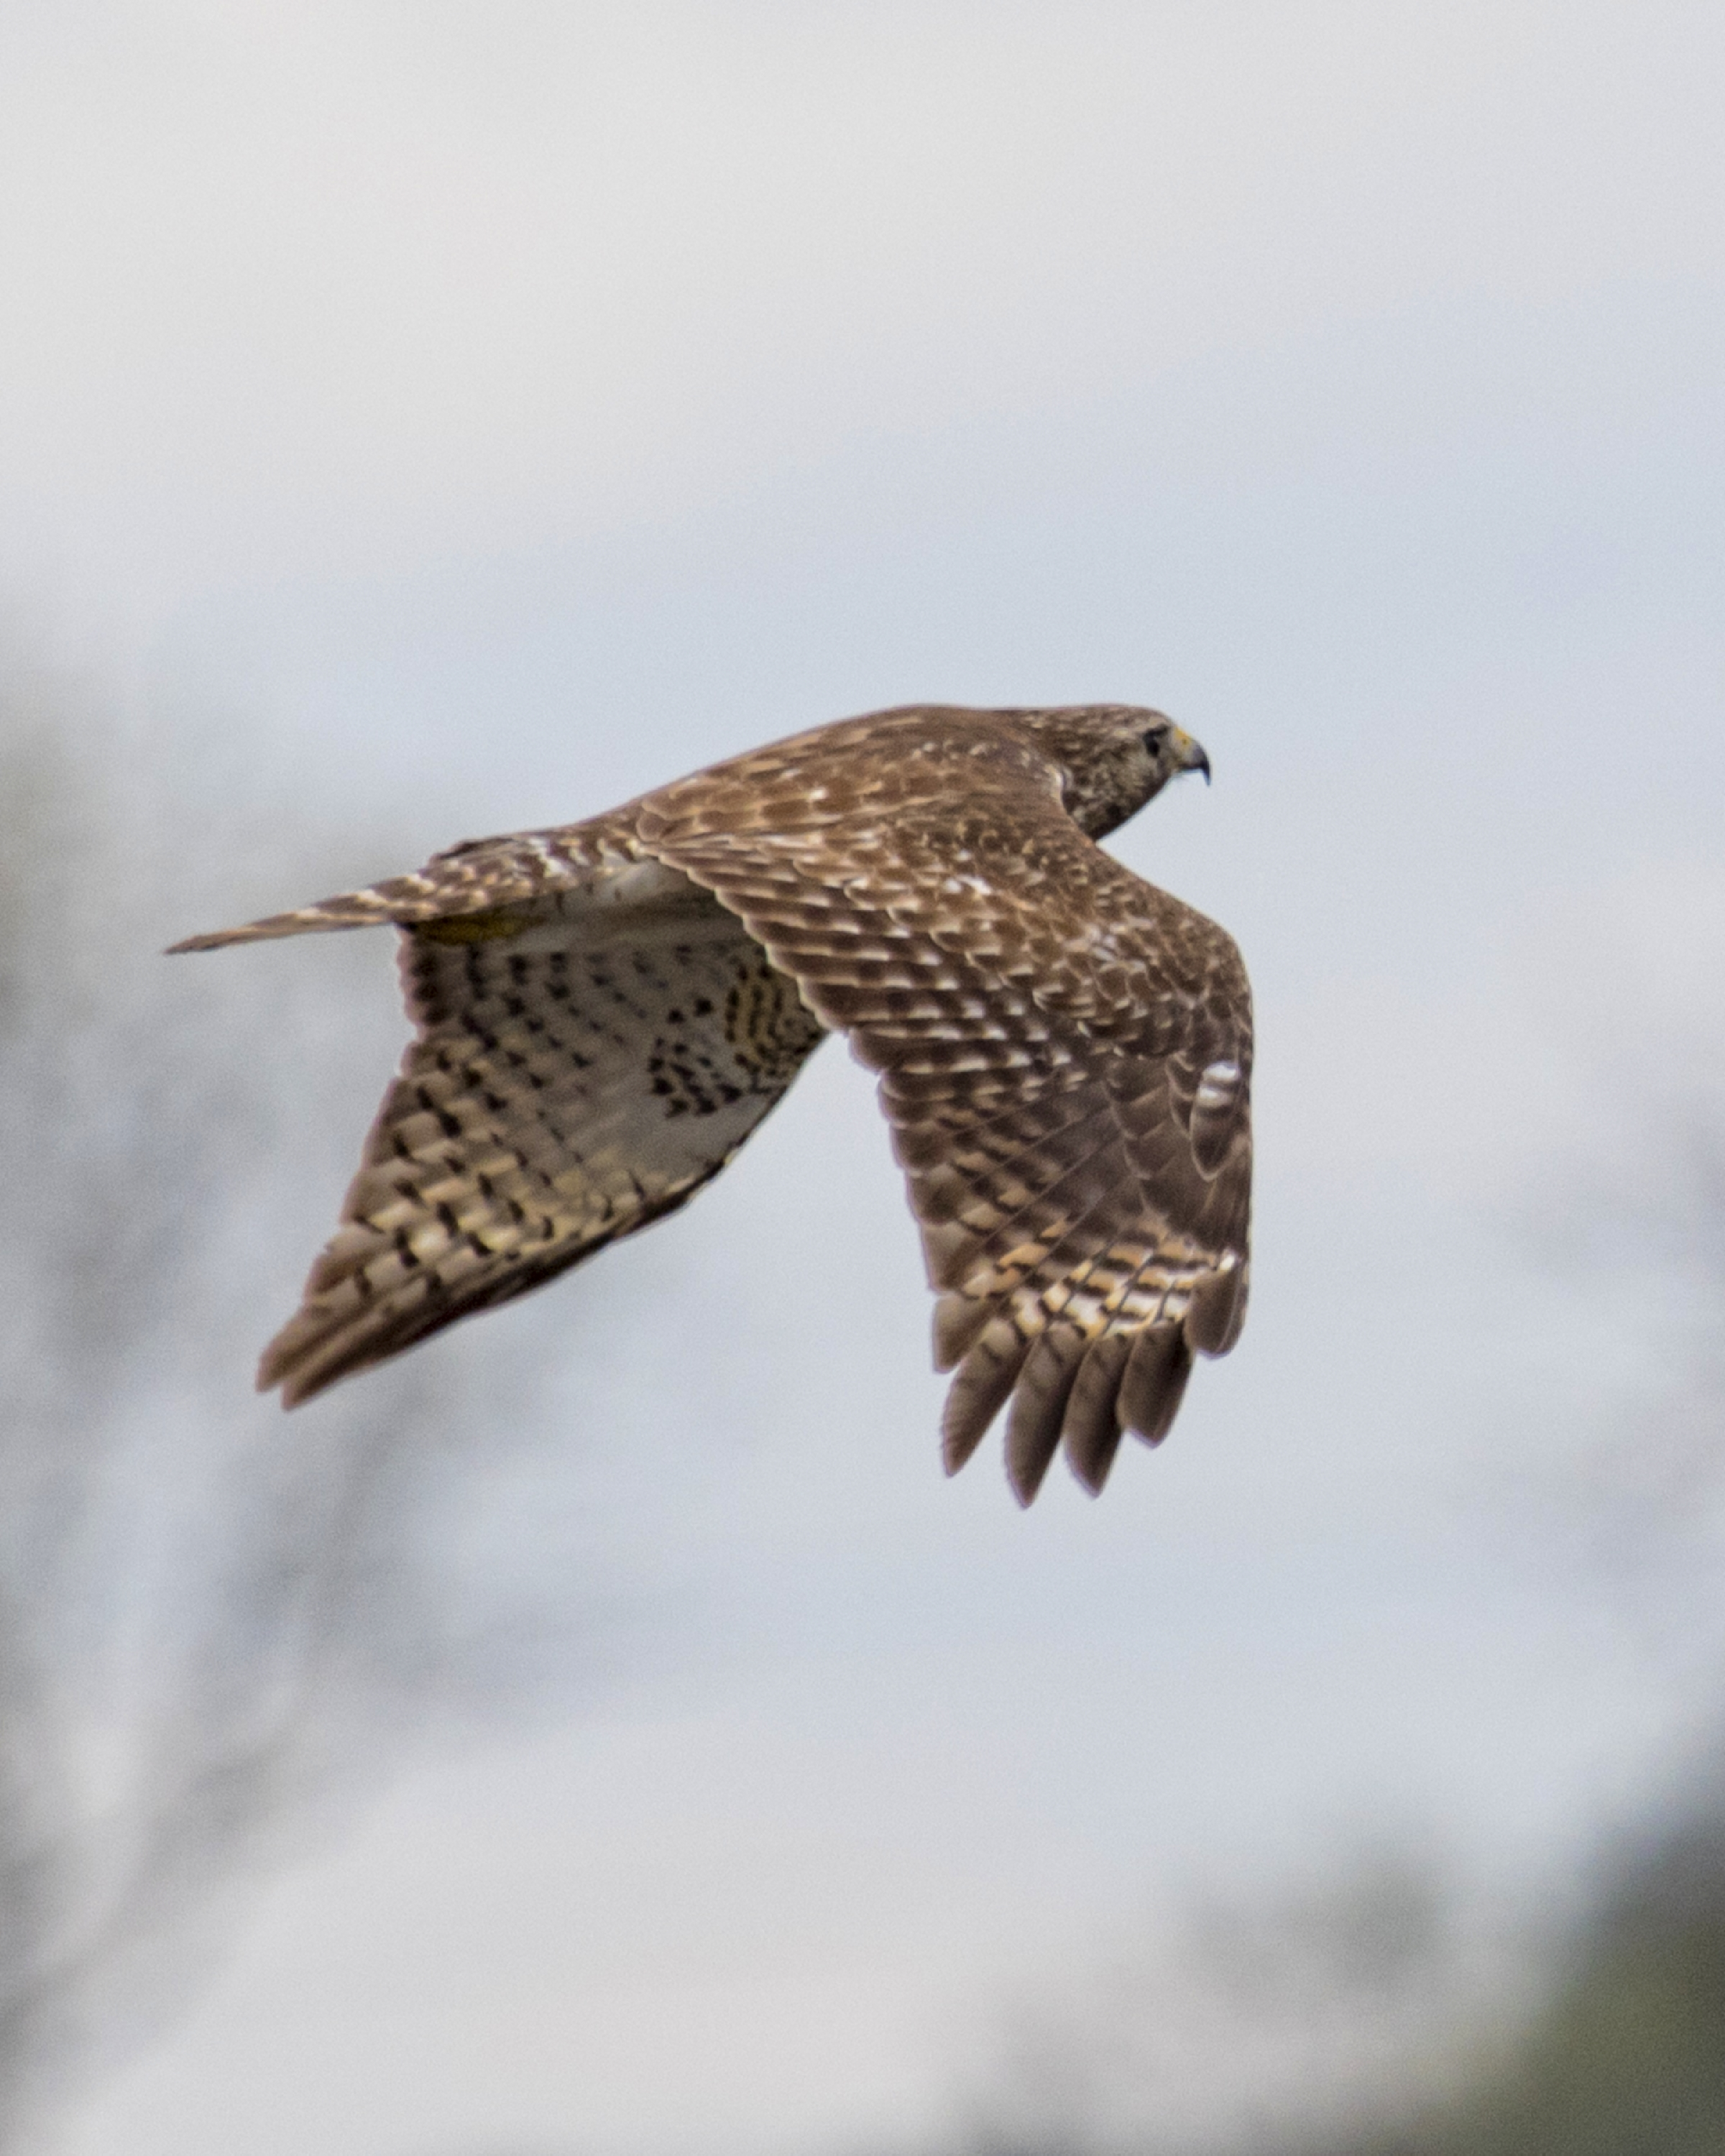 The quiet peace of the morning is disturbed by an irritating and annoying call from a juvenile Red-Shouldered Hawk